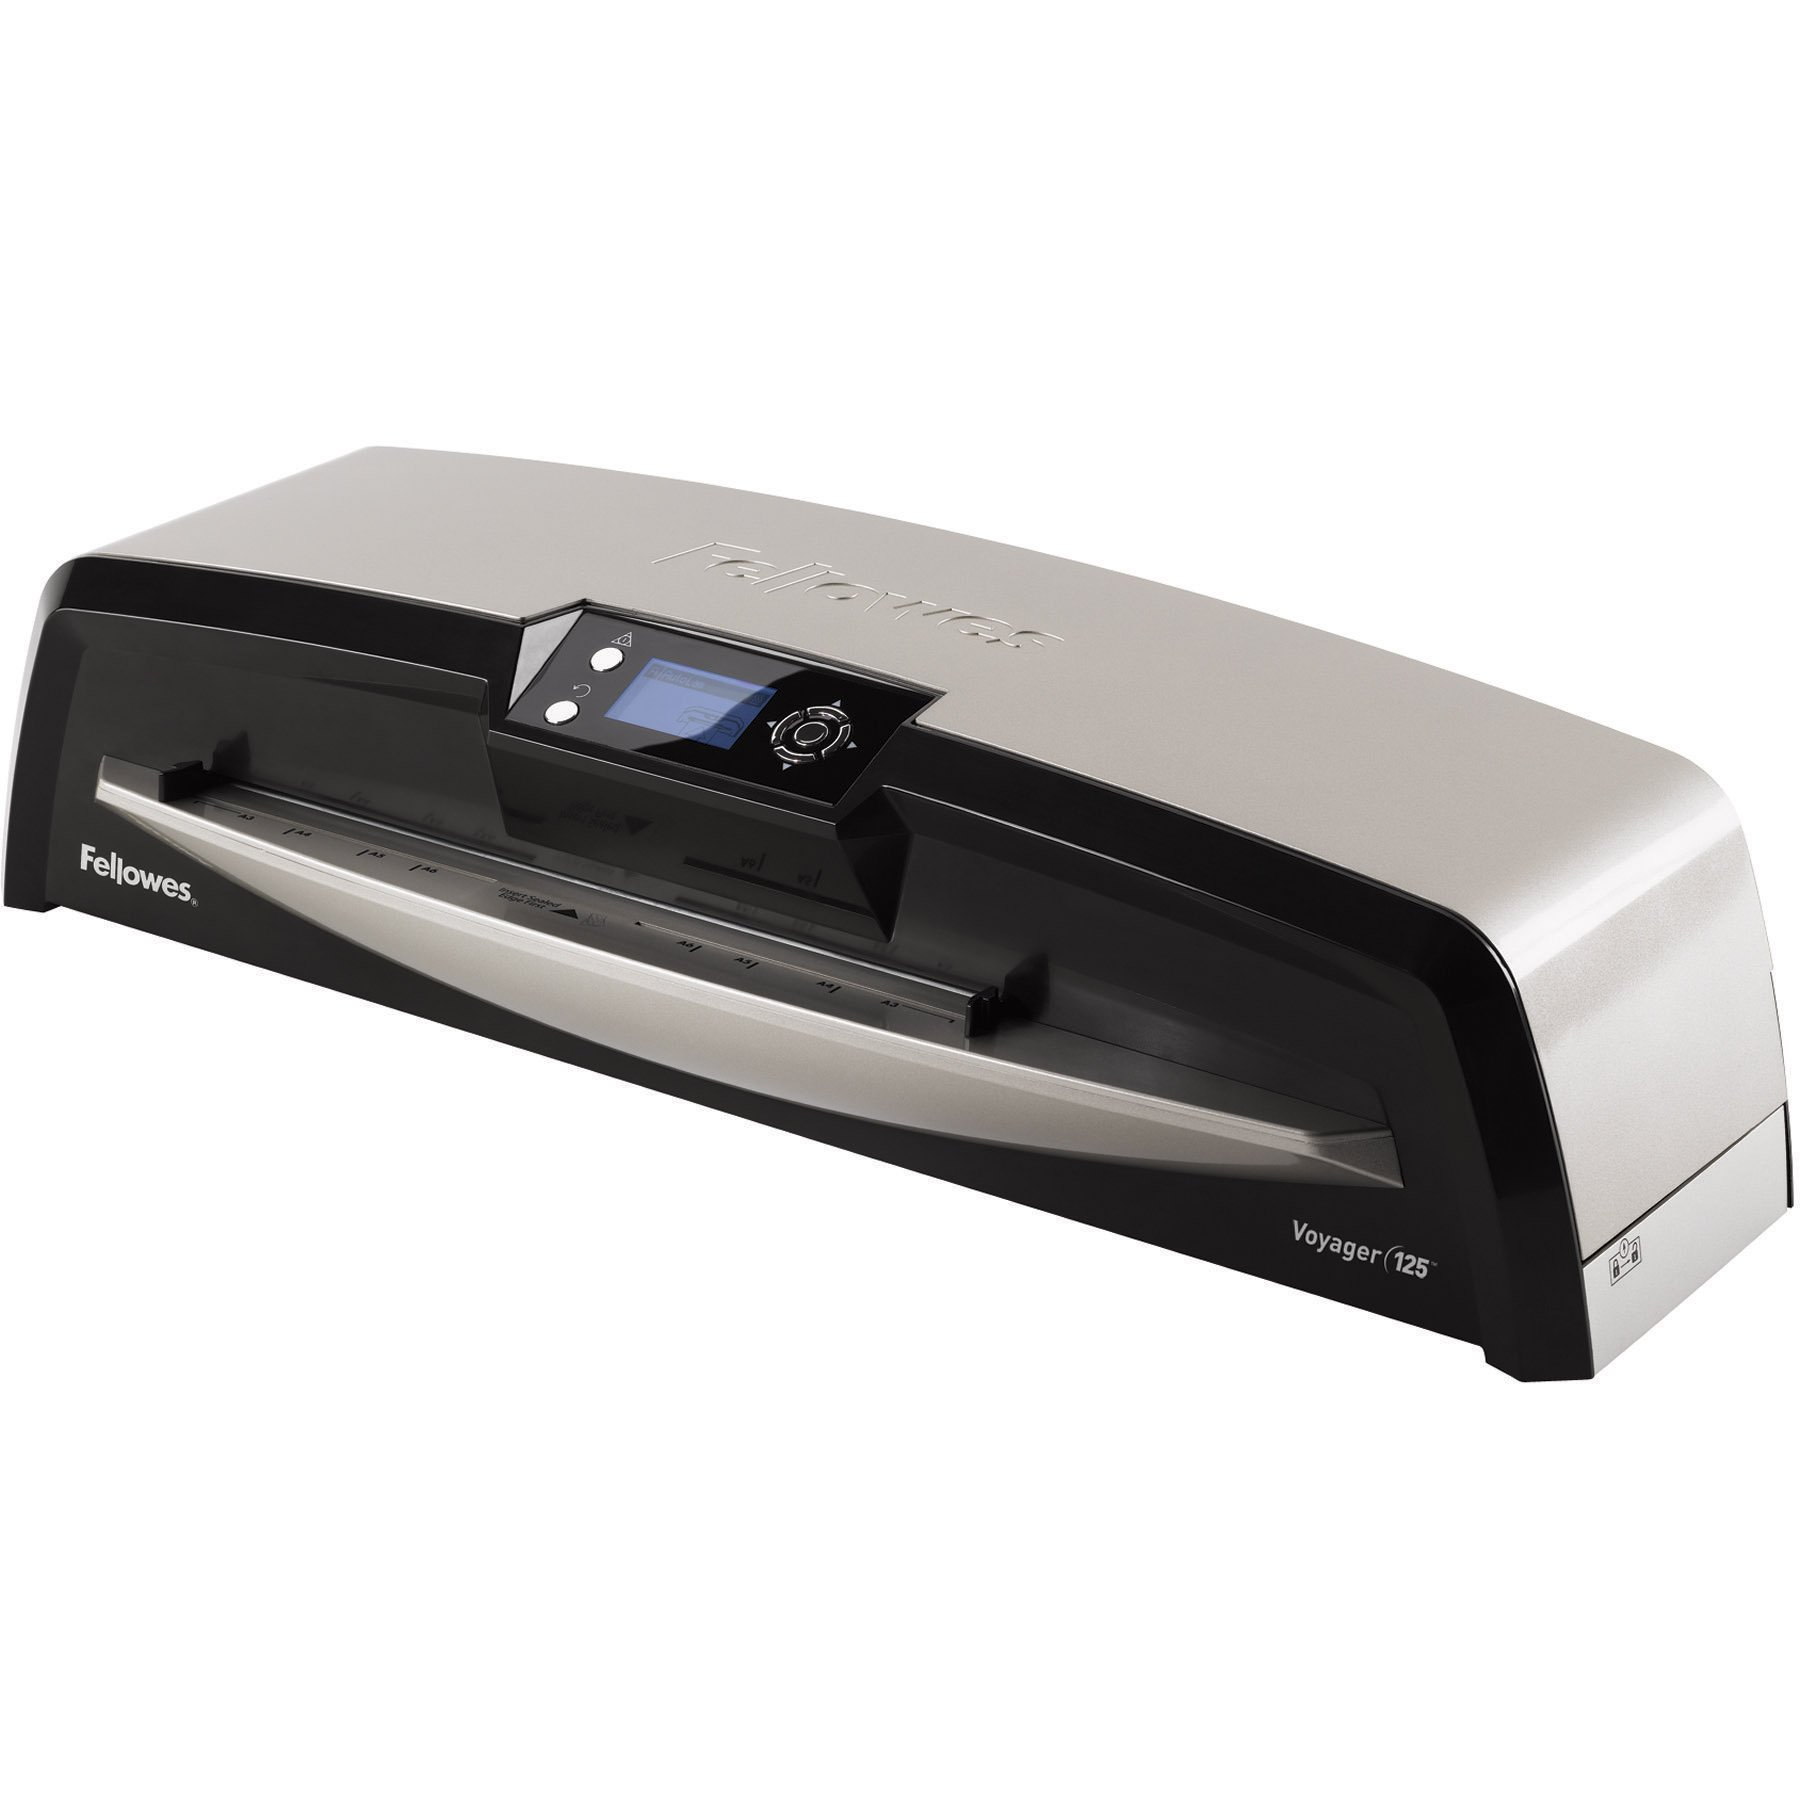 Fellowes Laminator Voyager 125, Automatic Features, Jam Free Laminating Machine, with Laminating Pouches Kit (5218601) by Fellowes